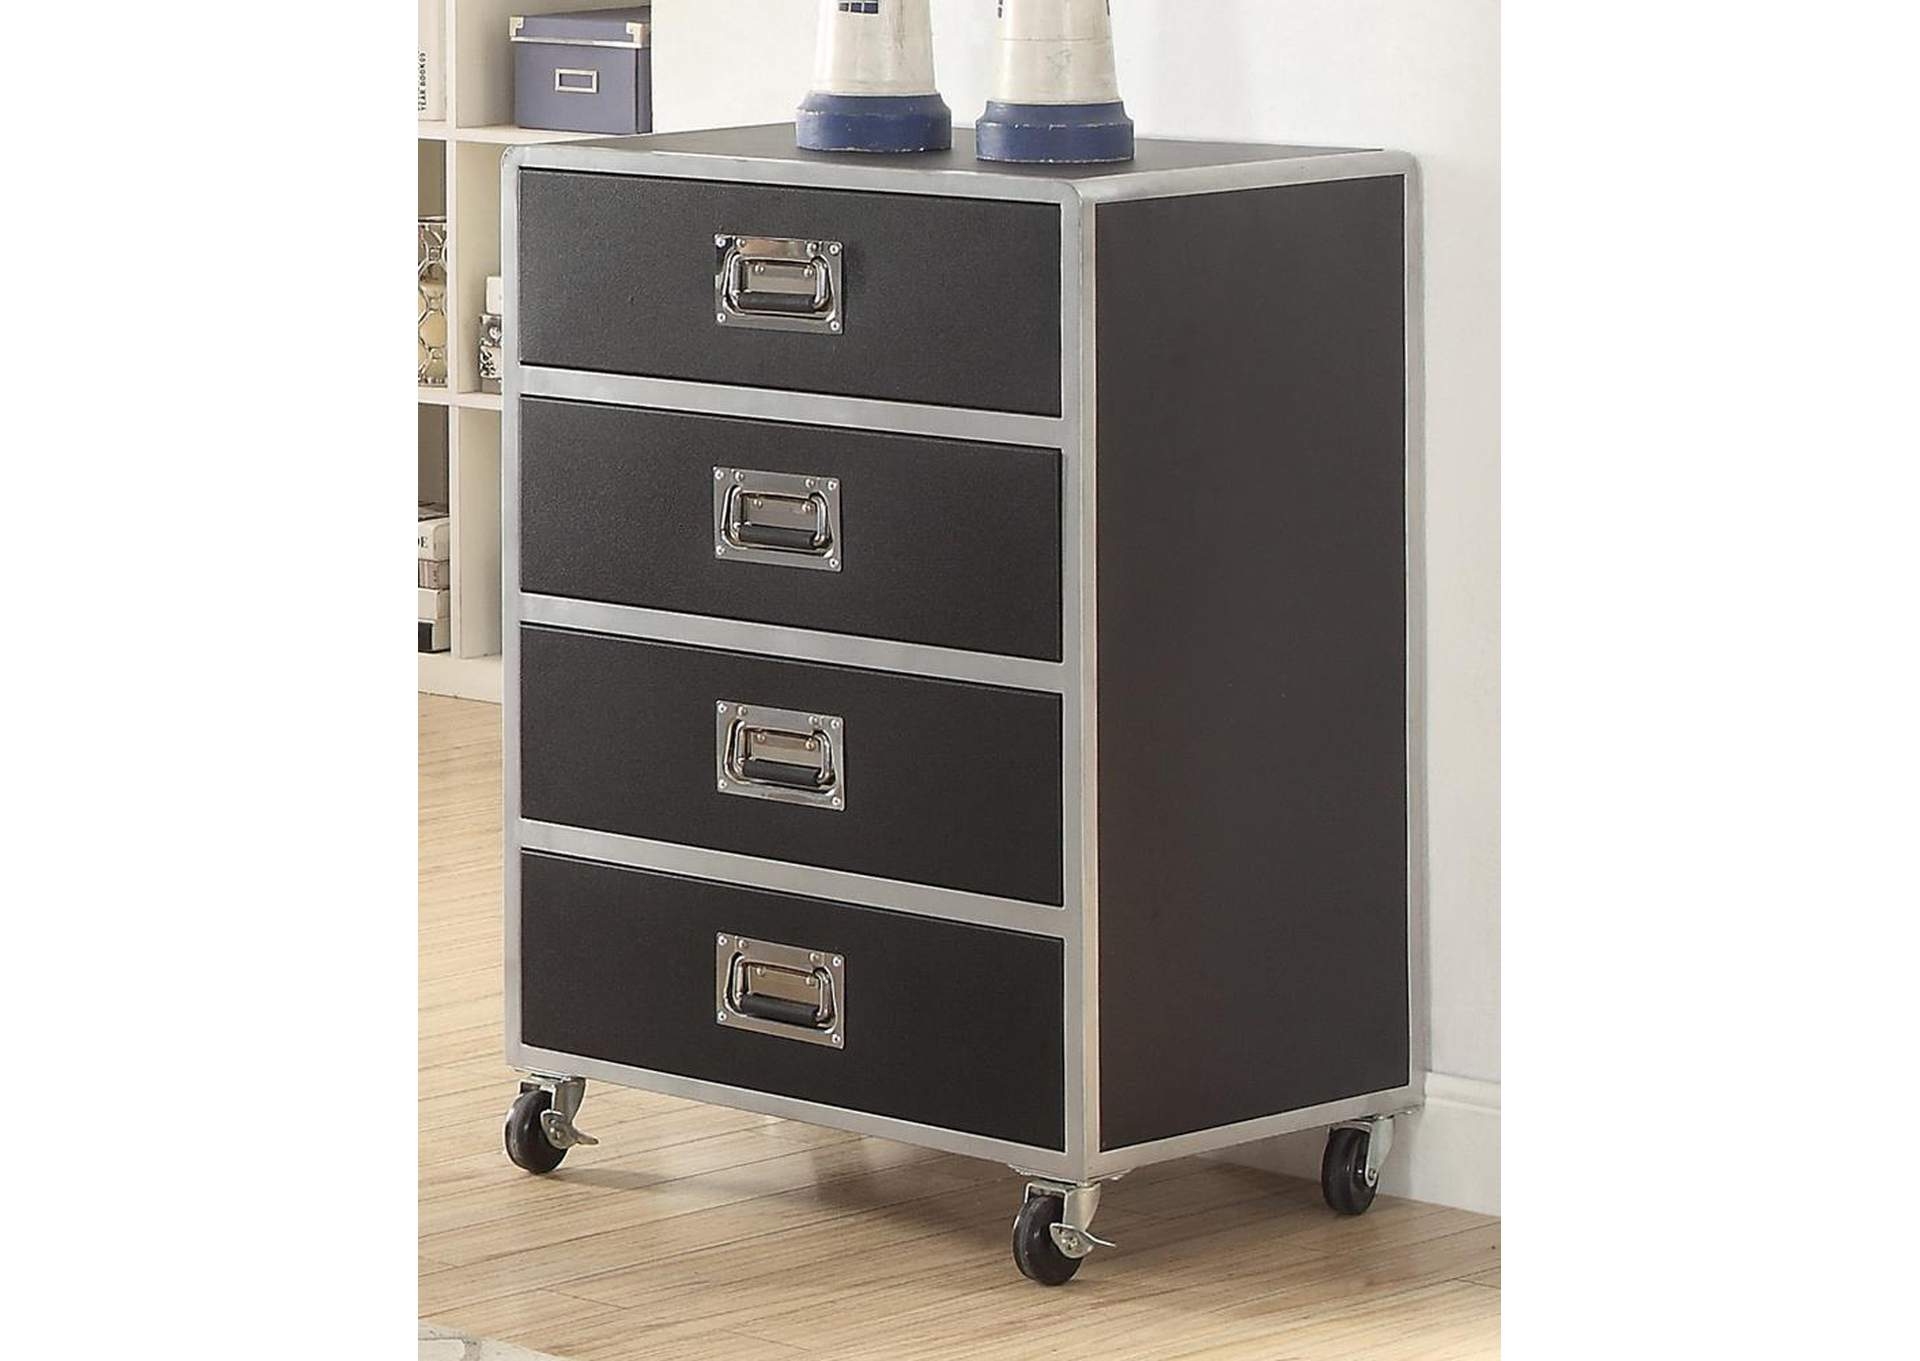 Leclair Black/Silver Four Drawer Chest,Coaster Furniture